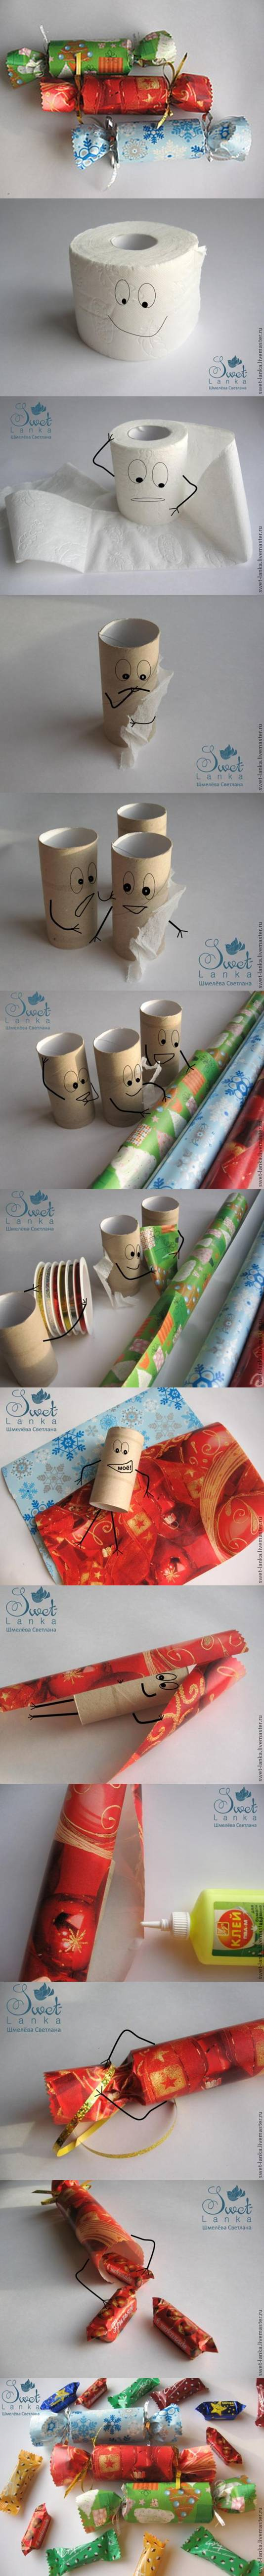 DIY Candy Shaped Candy Box from Toilet Paper Roll 2